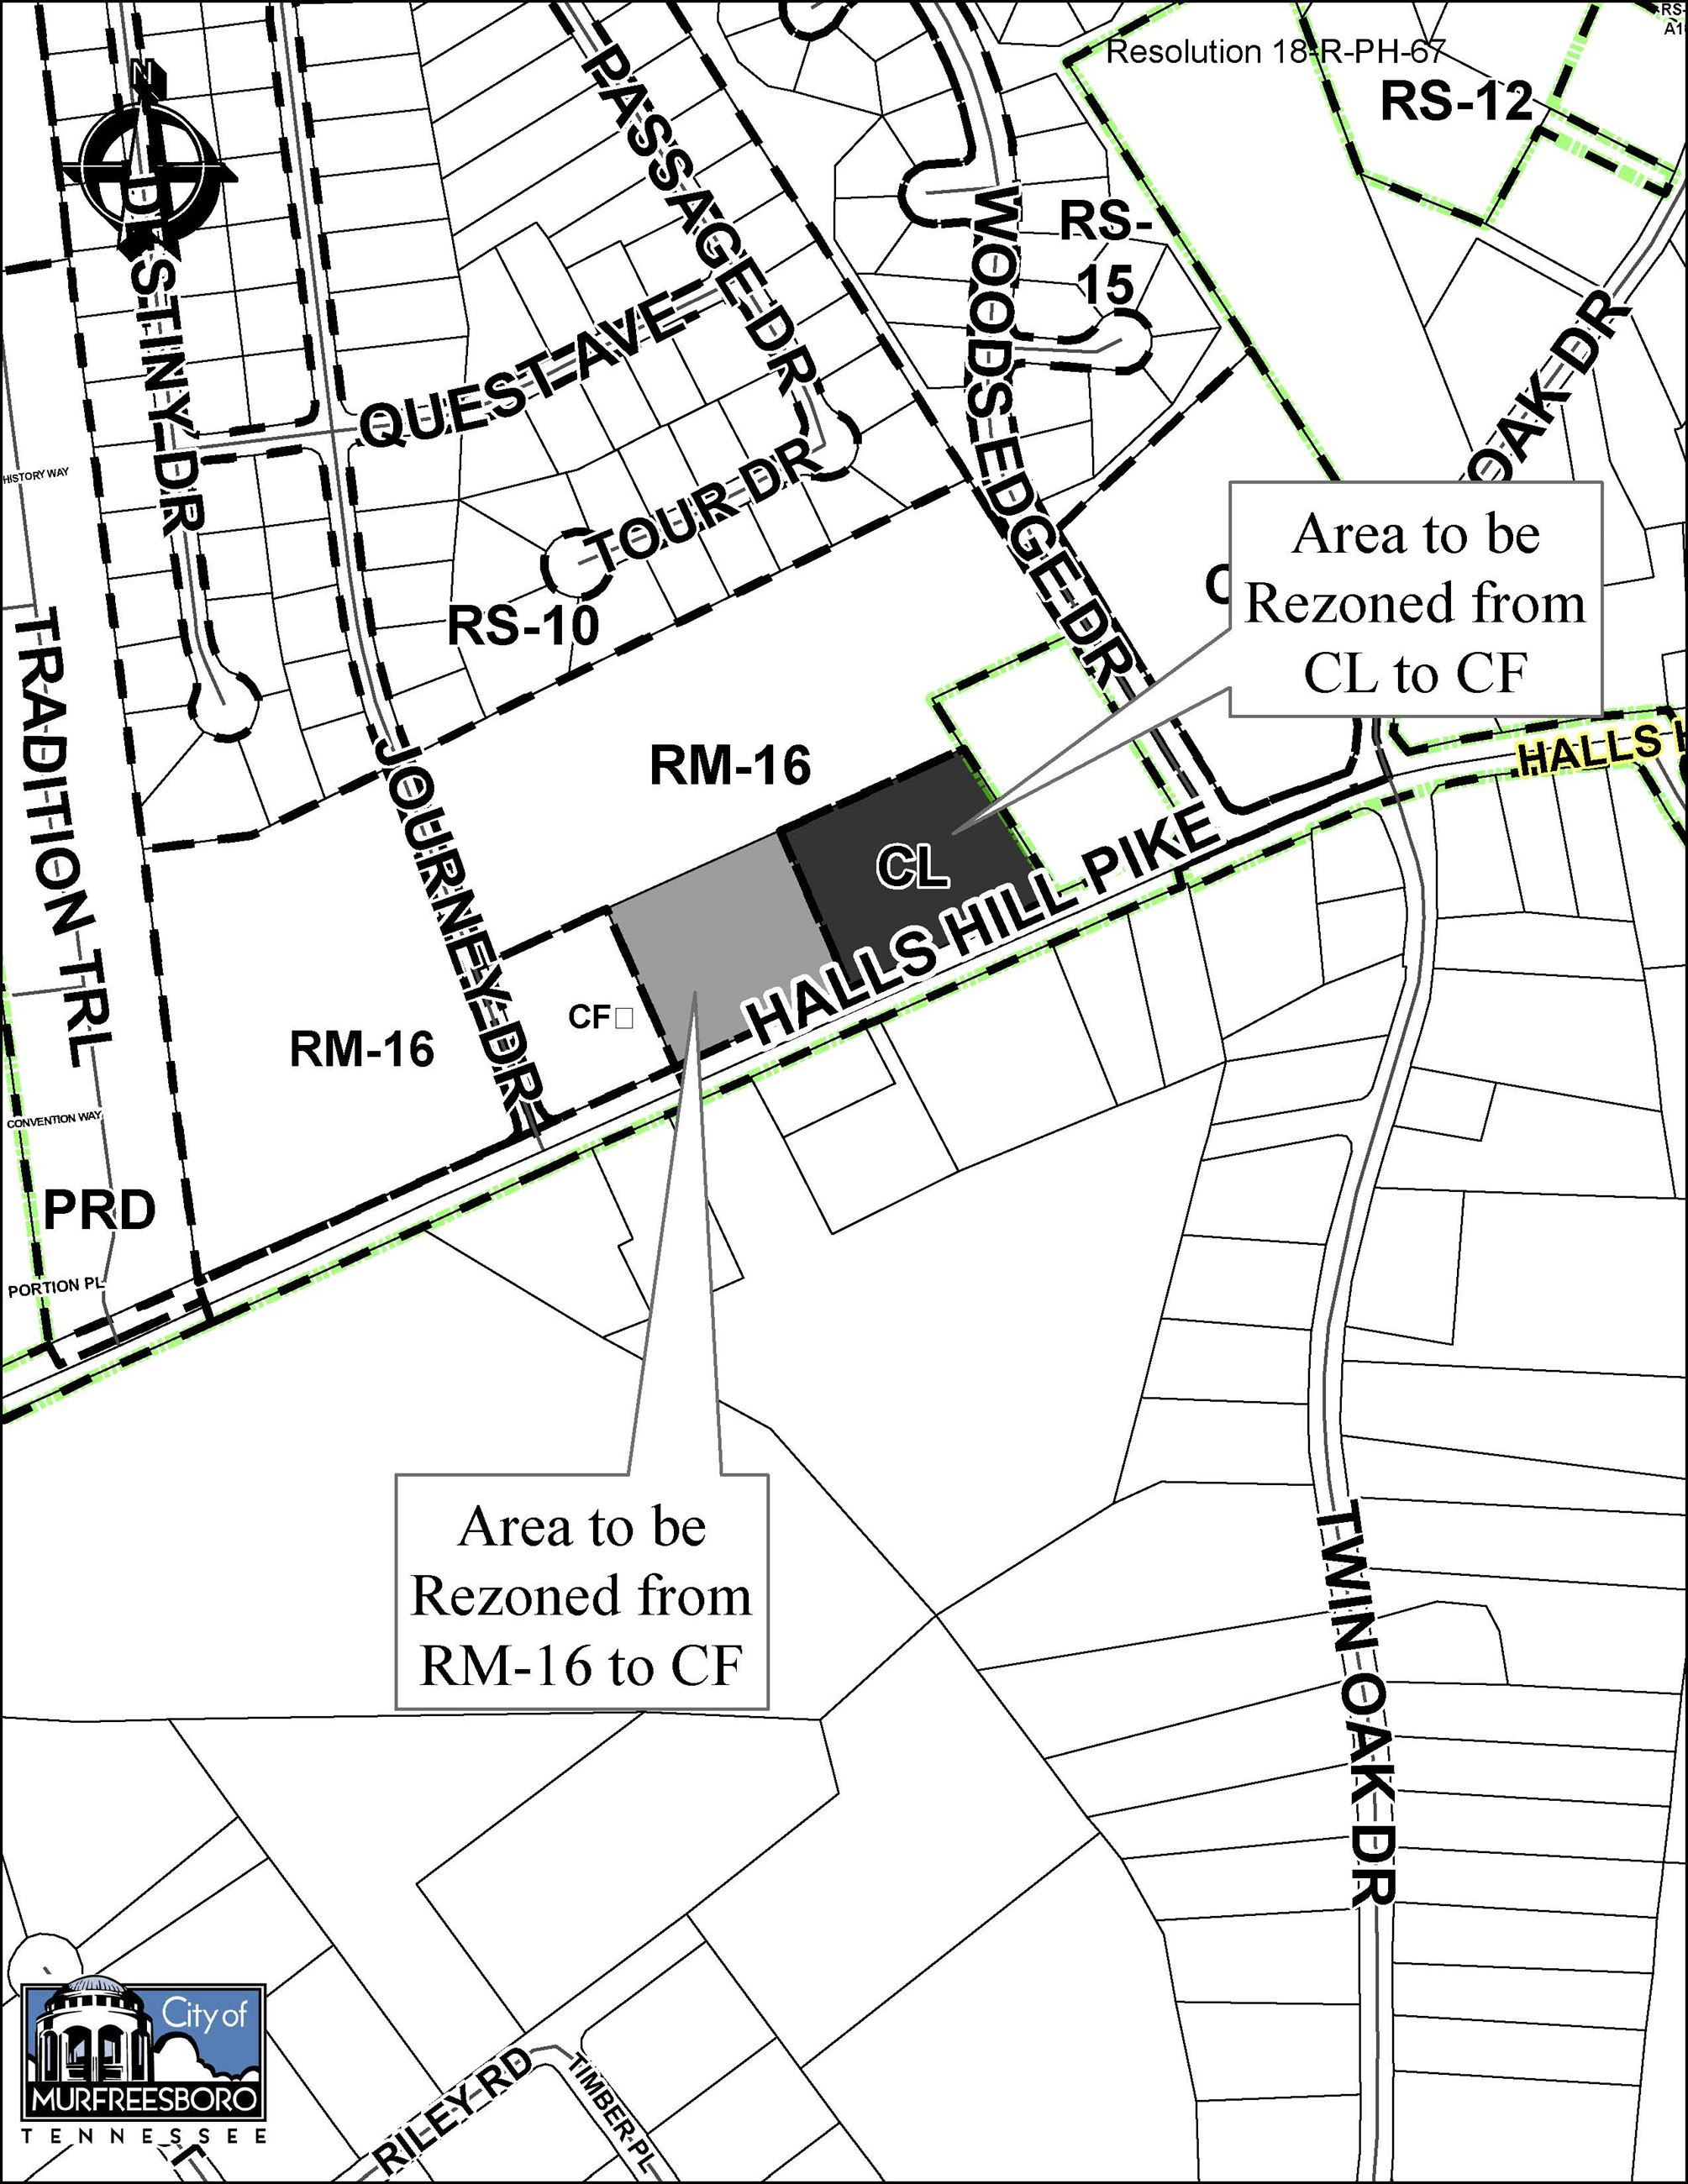 Map of Halls Hill Pike for Resolution 18-R-PH-67